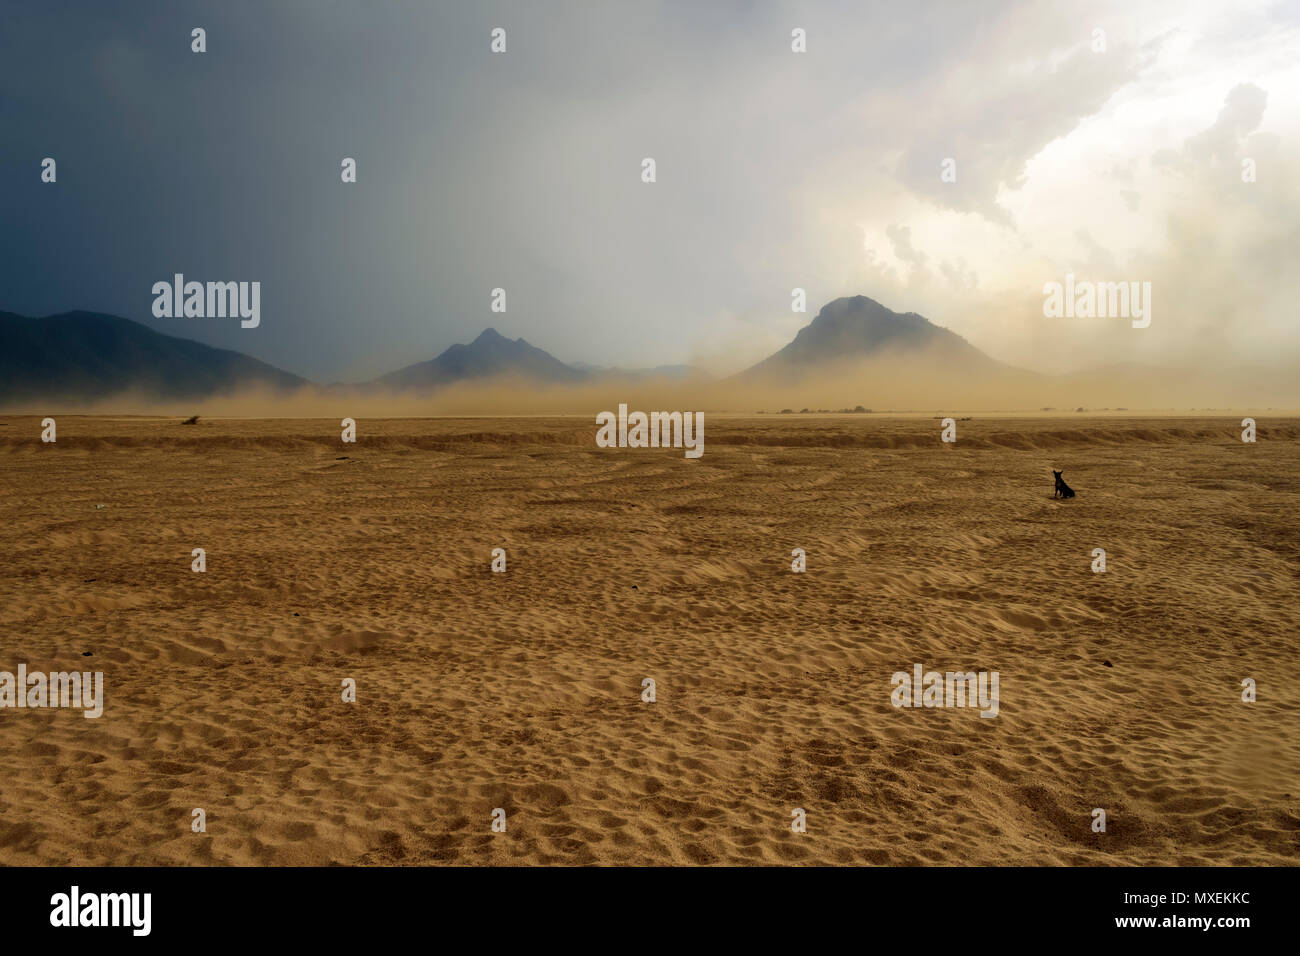 Sandstorm raging over the bank of Mahanadi river during dusk, surrounded by Eastern Ghat mountain range, copy space Stock Photo